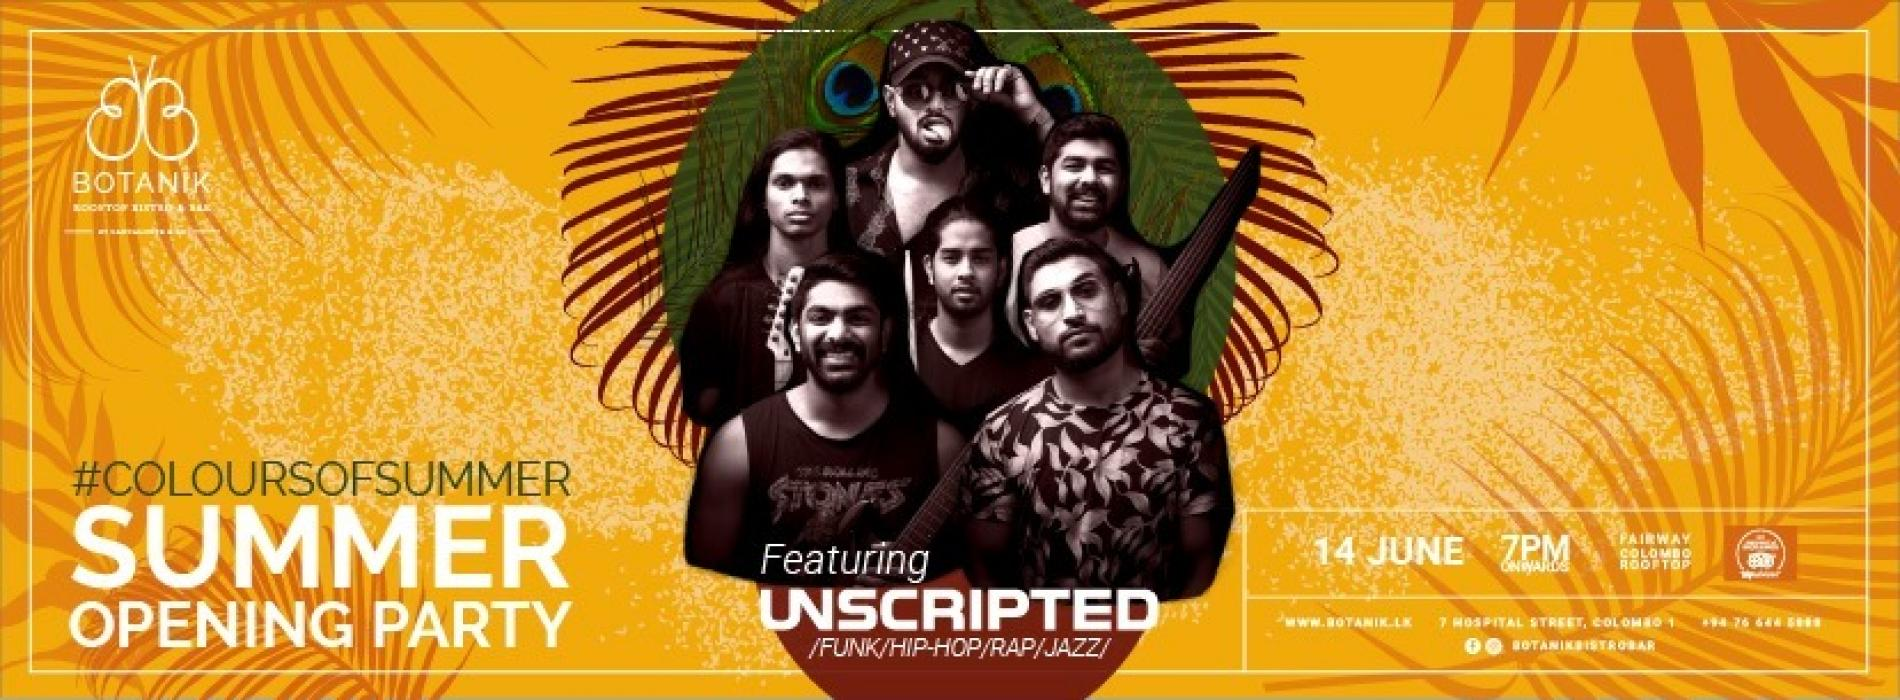 Summer Opening Party With Unscripted